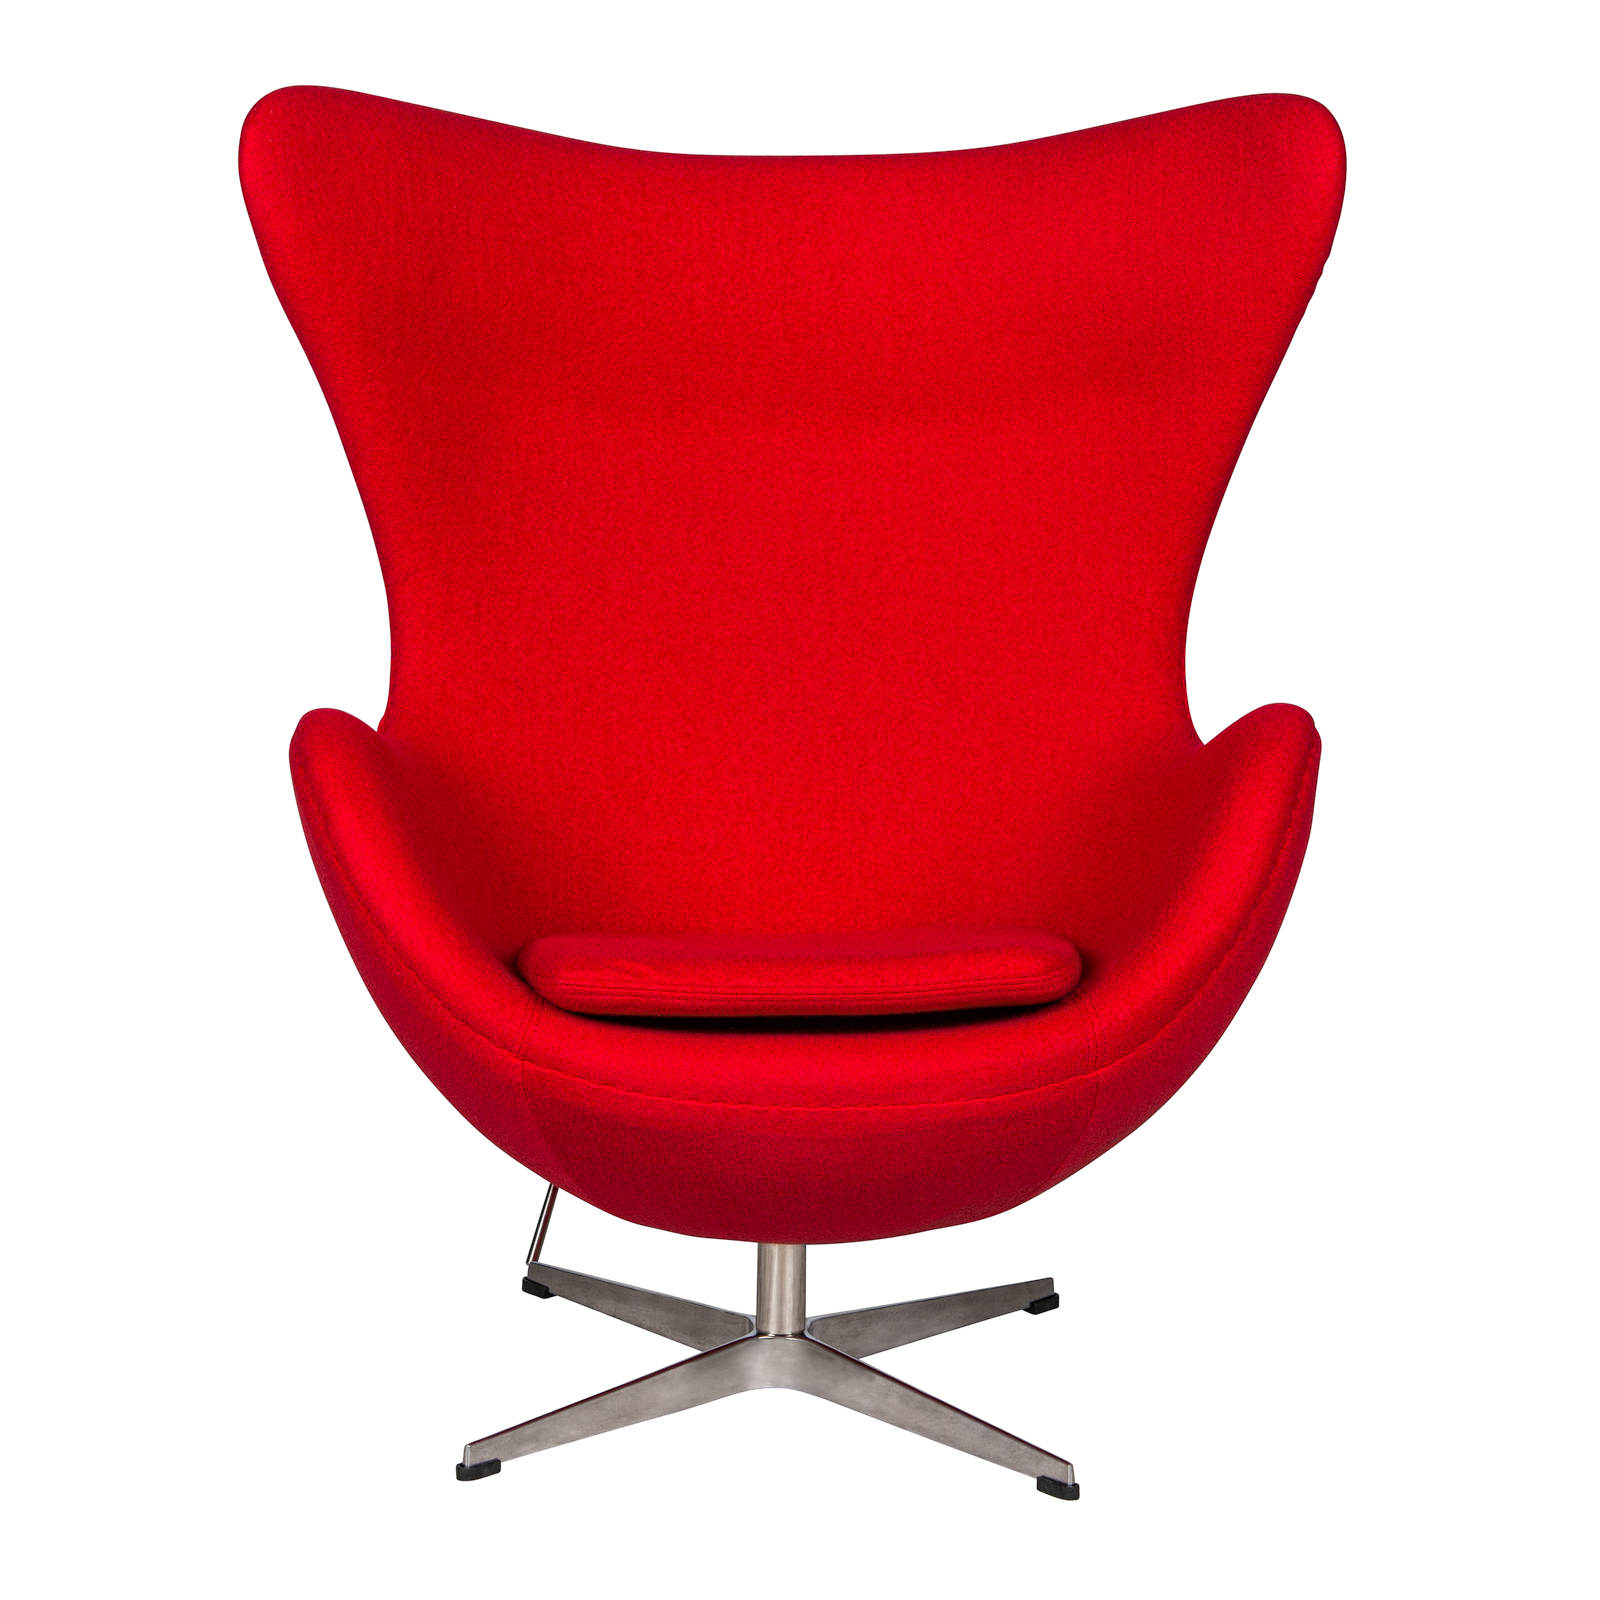 Leisuremod Arne Jacobsen Red Egg Chair Click To Enlarge